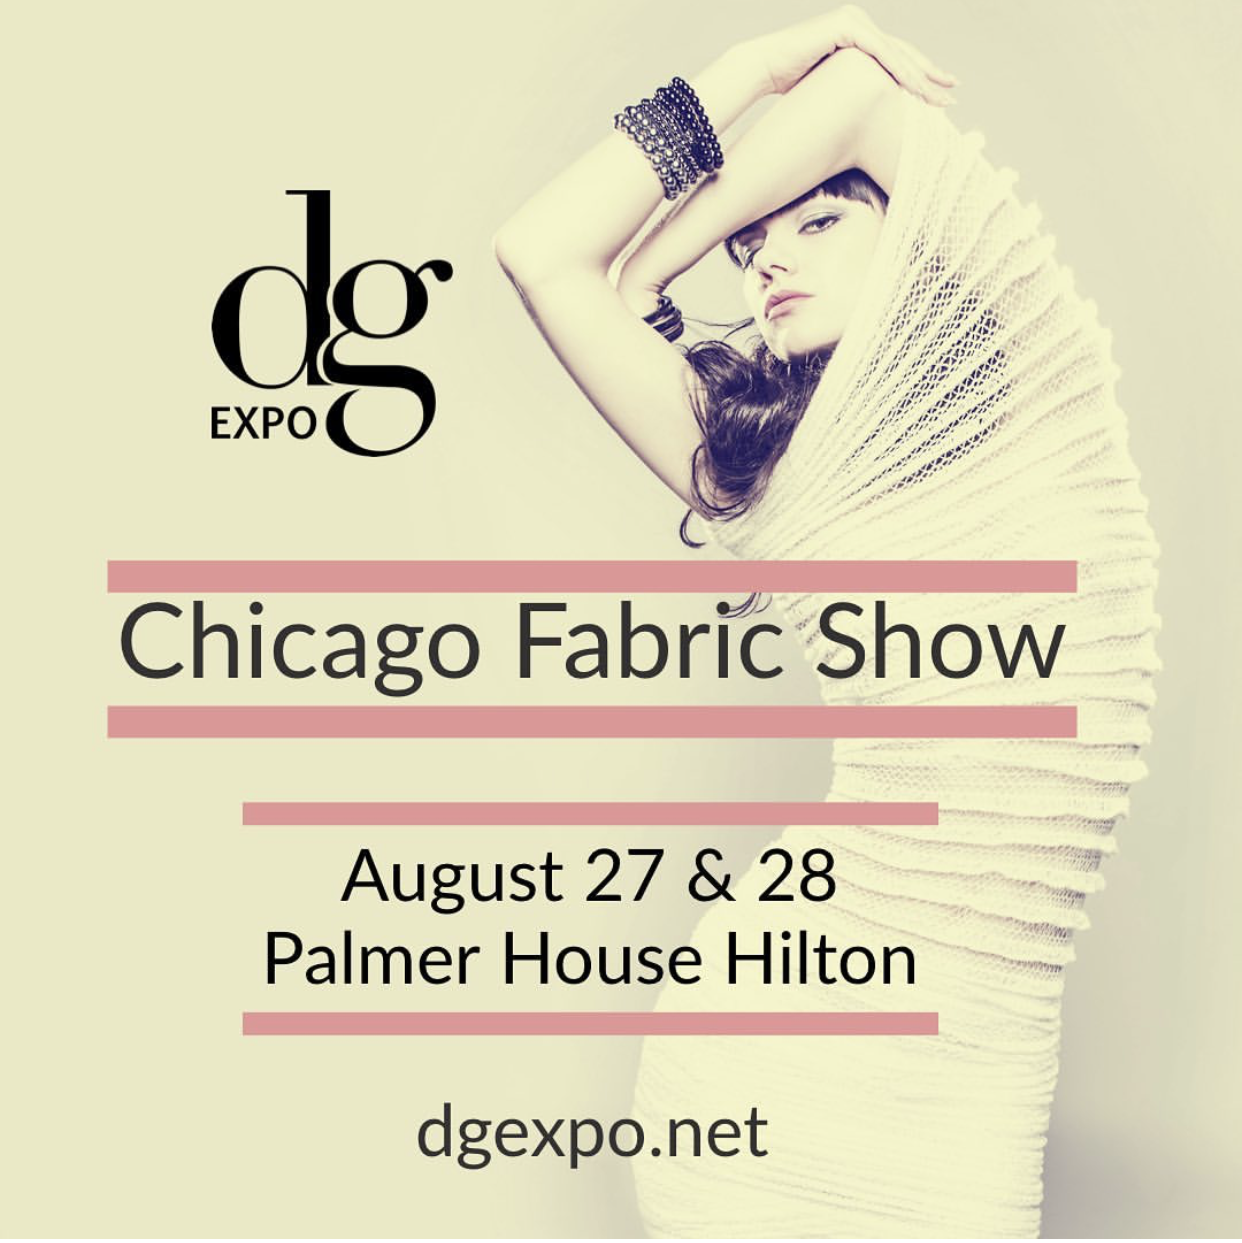 fgi chicago event trade show dg expo sourcing fabric materials